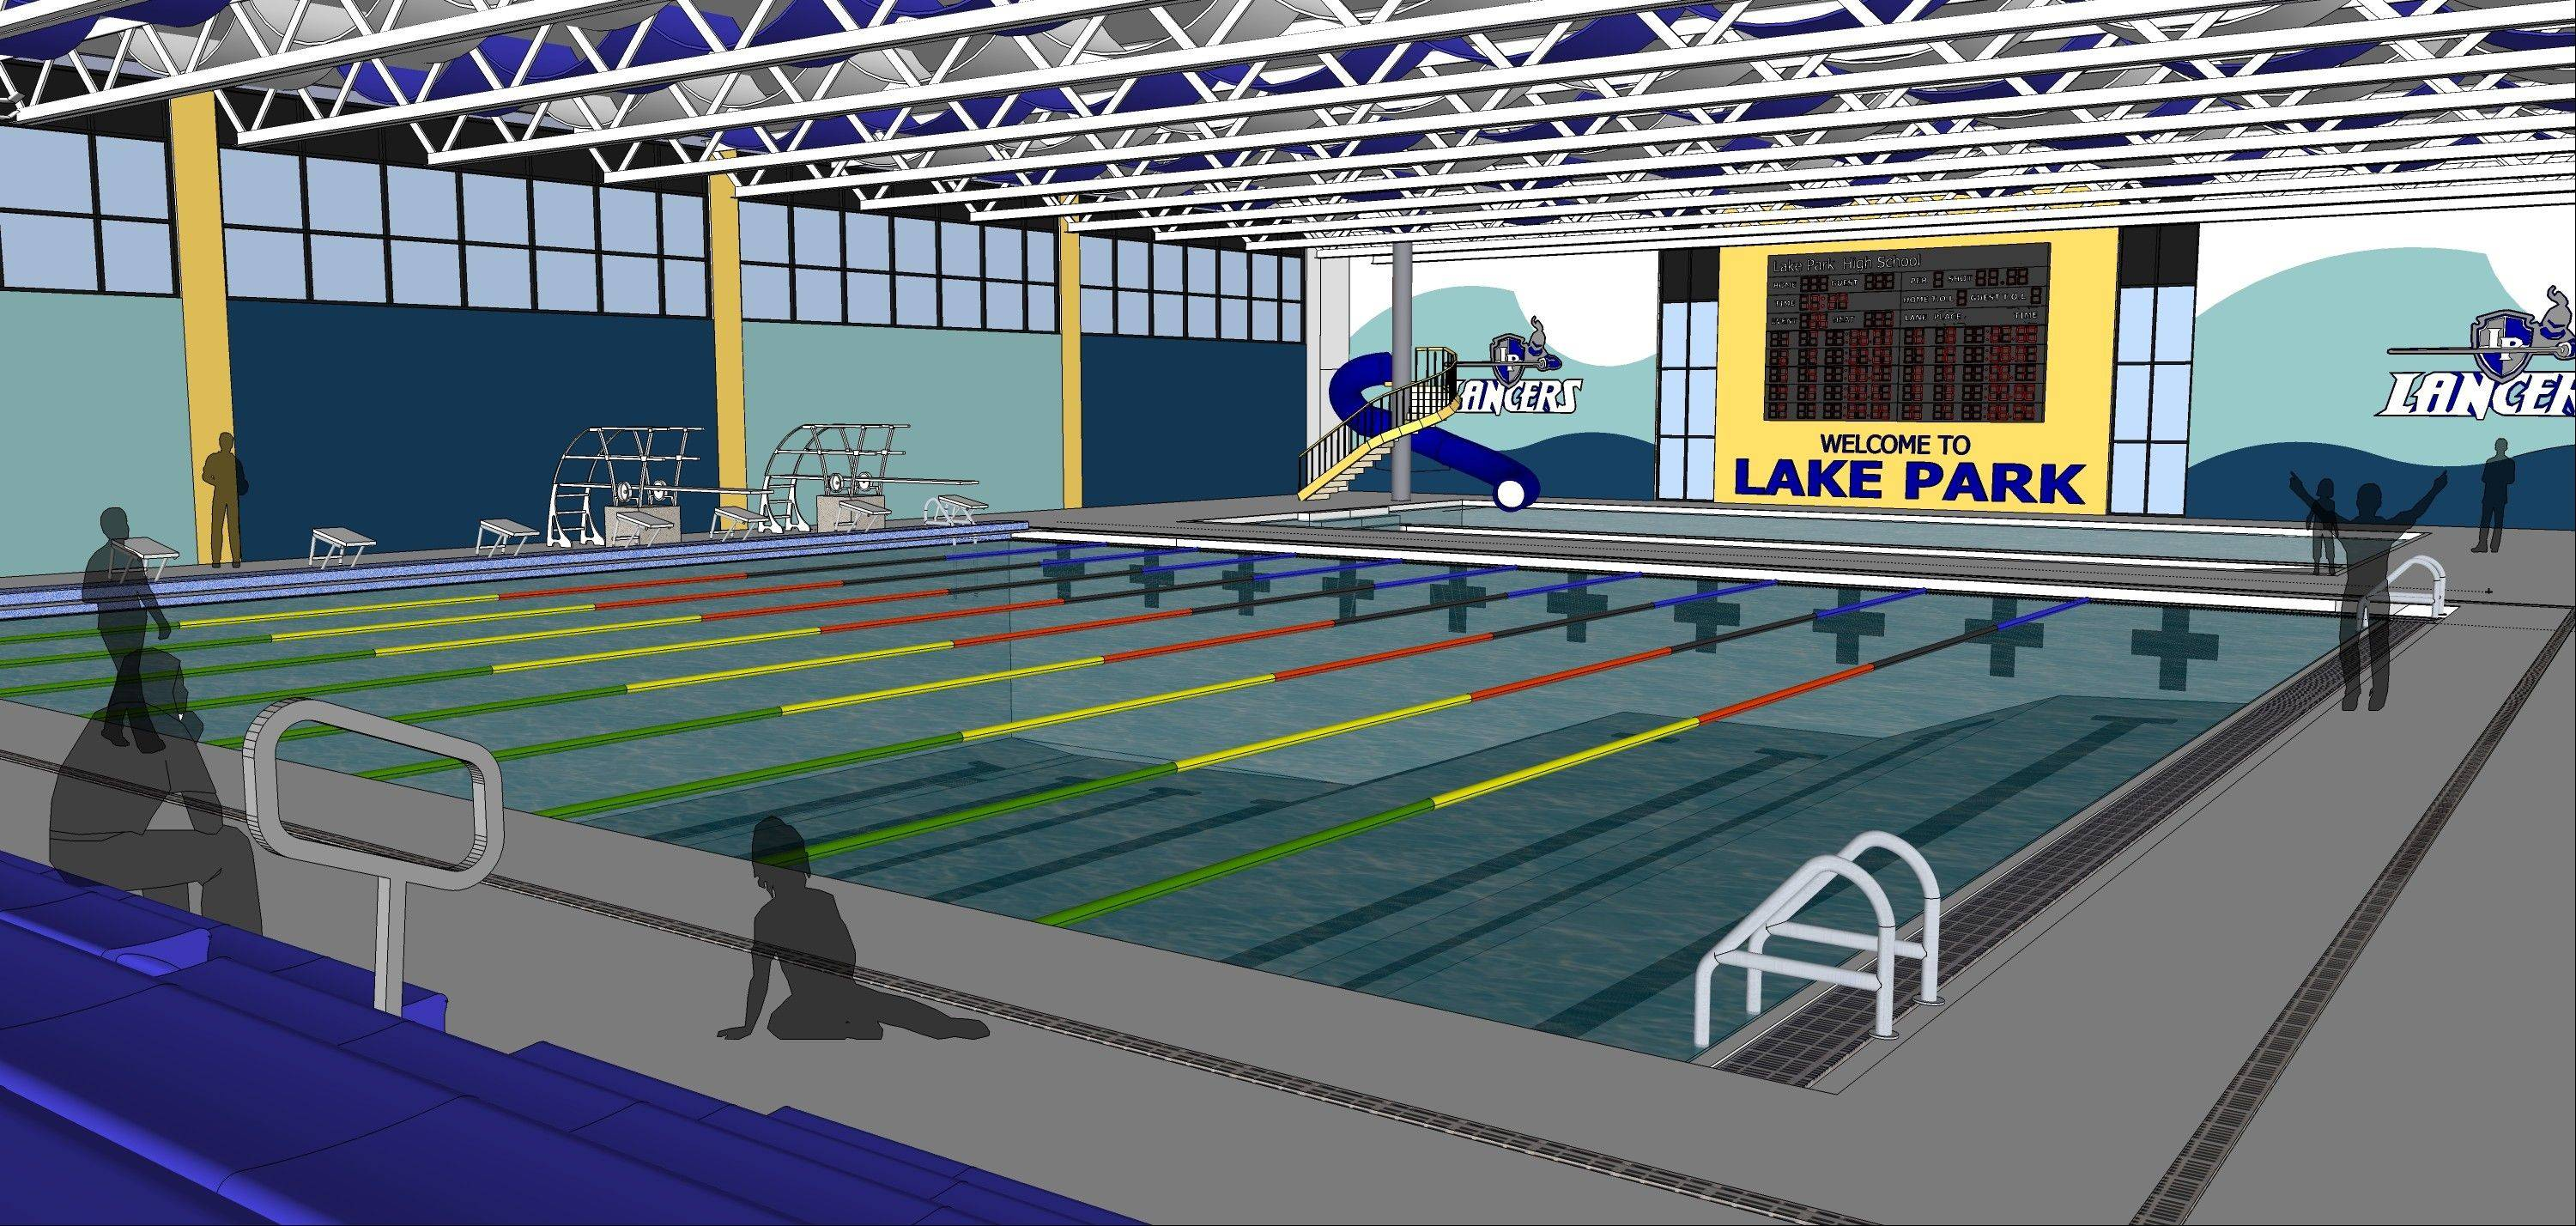 Lake Park High School District 108 is asking voters to fund the construction and operation of an aquatic facility that could be built at the school's east campus by August 2015. The facility would include a 25-yard, eight-lane competition pool and a smaller pool to be filled with warmer water for athlete rehabilitation and toddler swimming lessons.